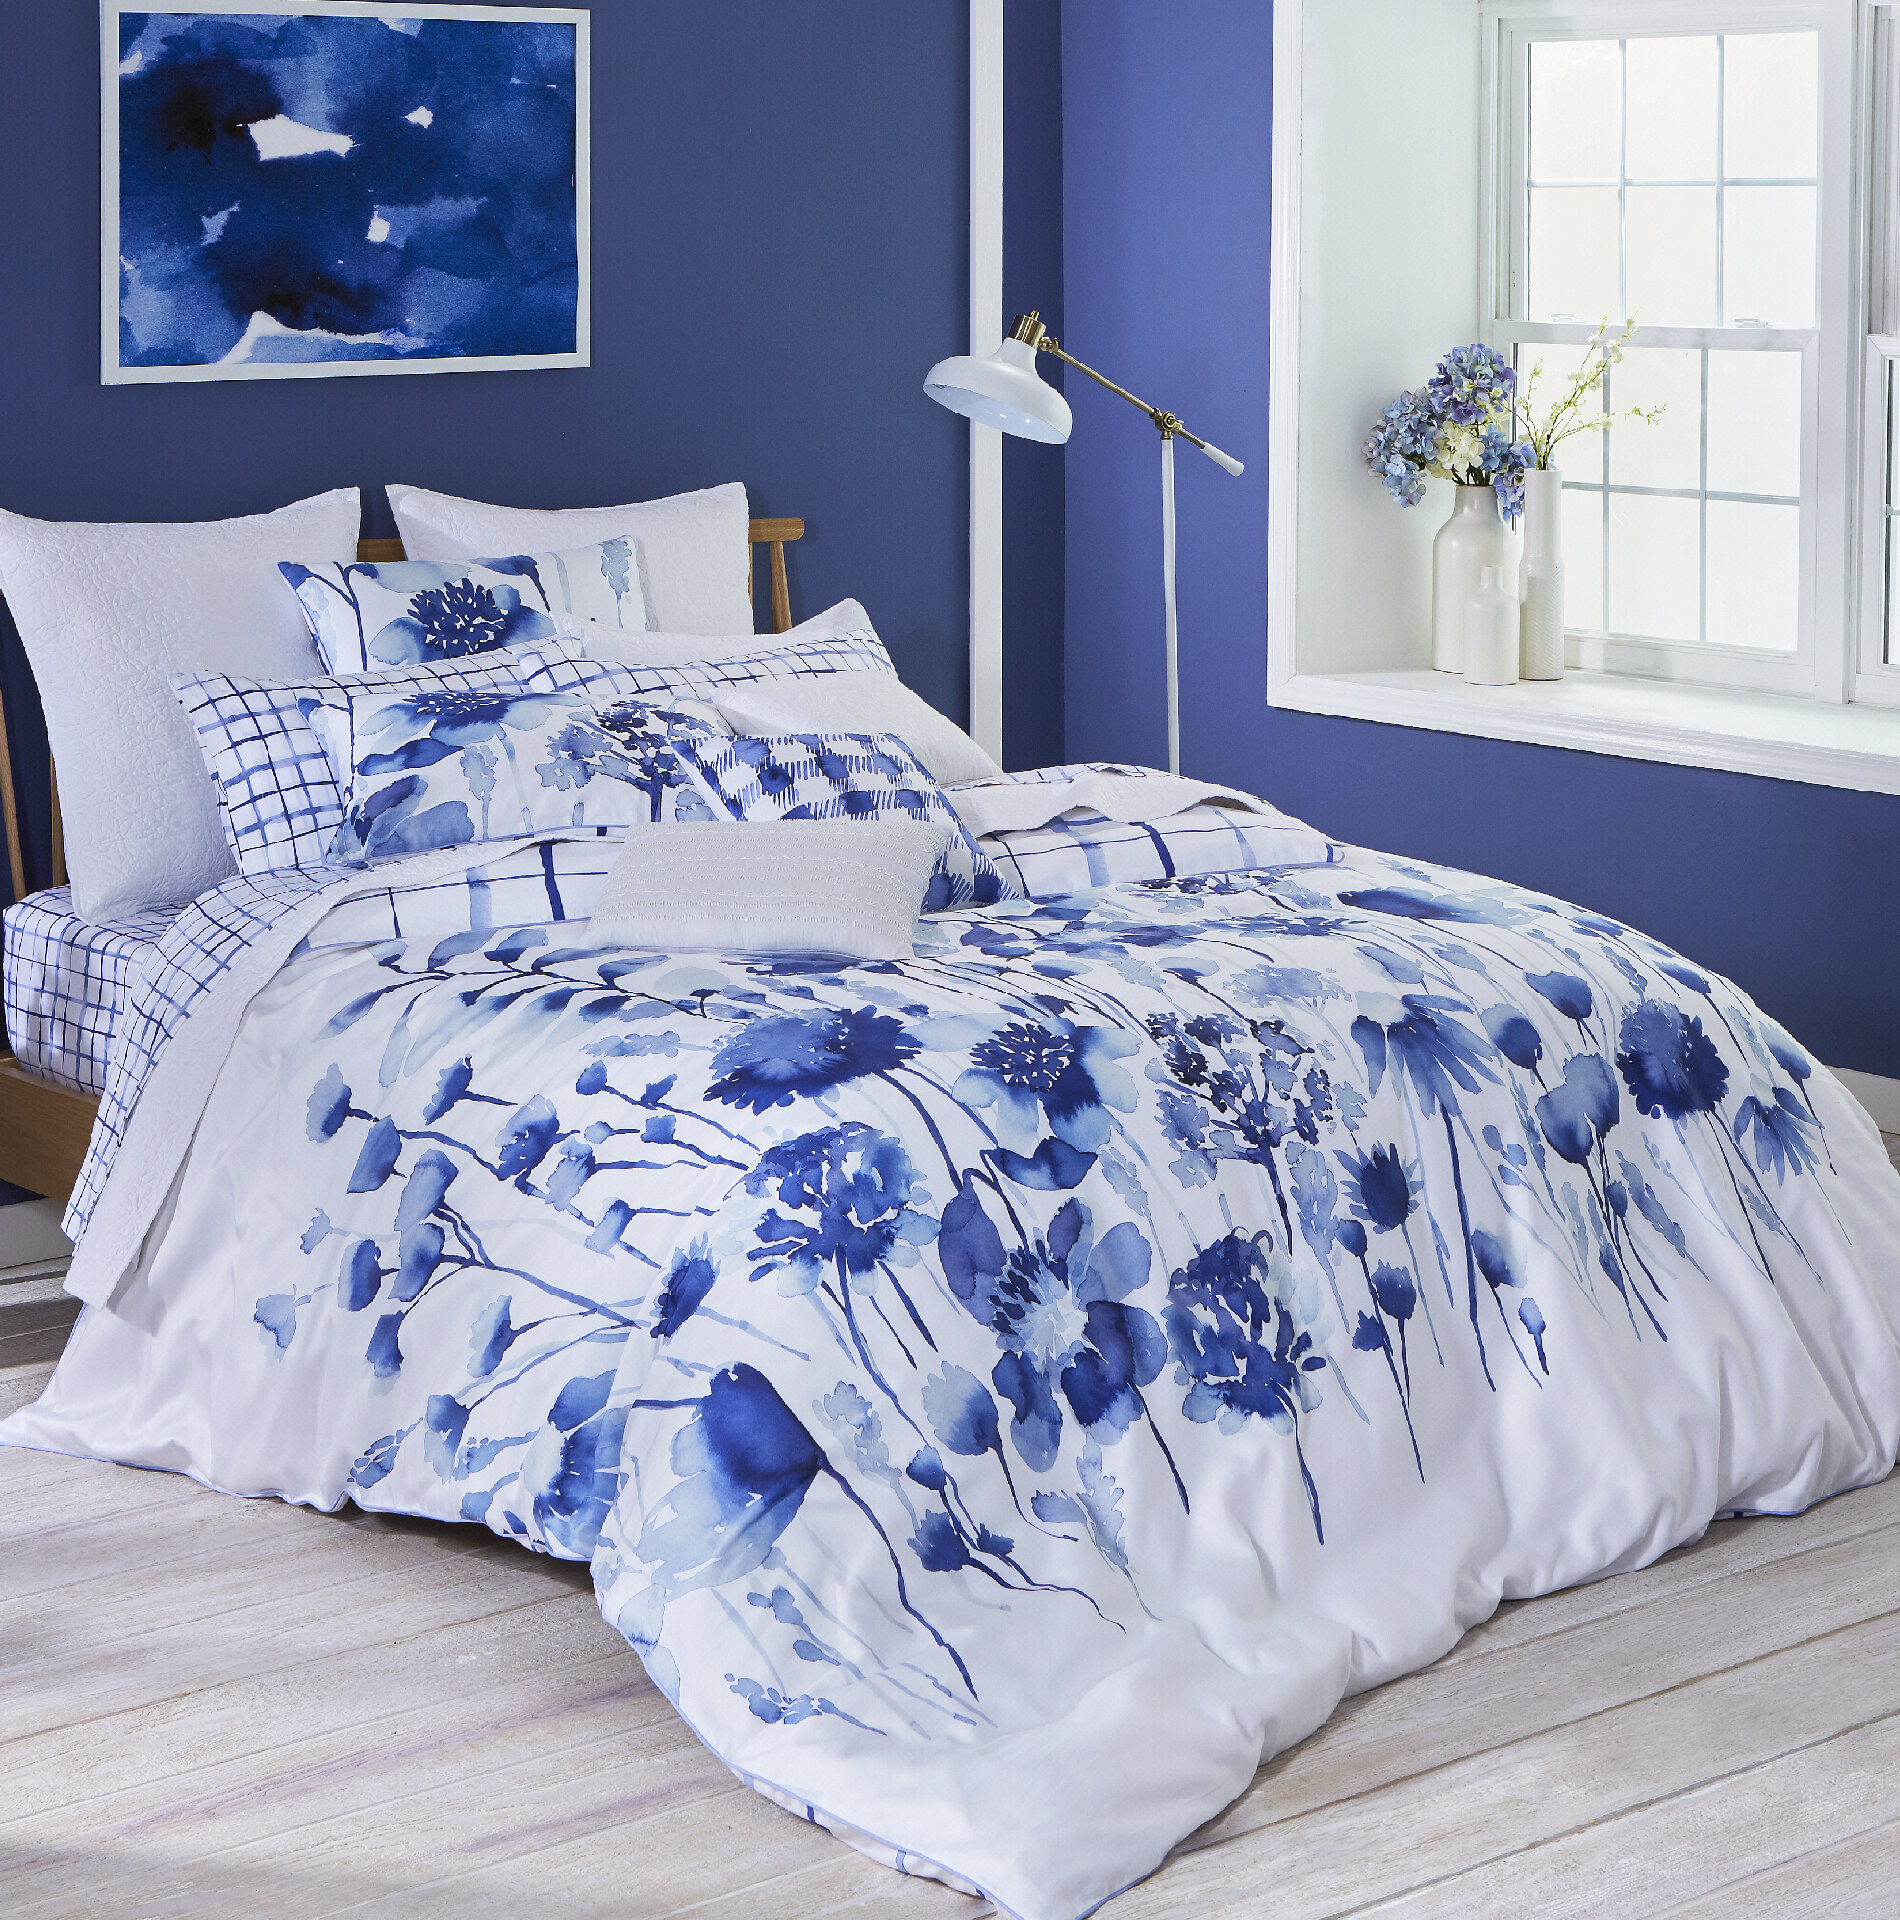 Merveilleux Bluebellgray Corran 100% Cotton Bedding Set U0026 Reviews | Wayfair